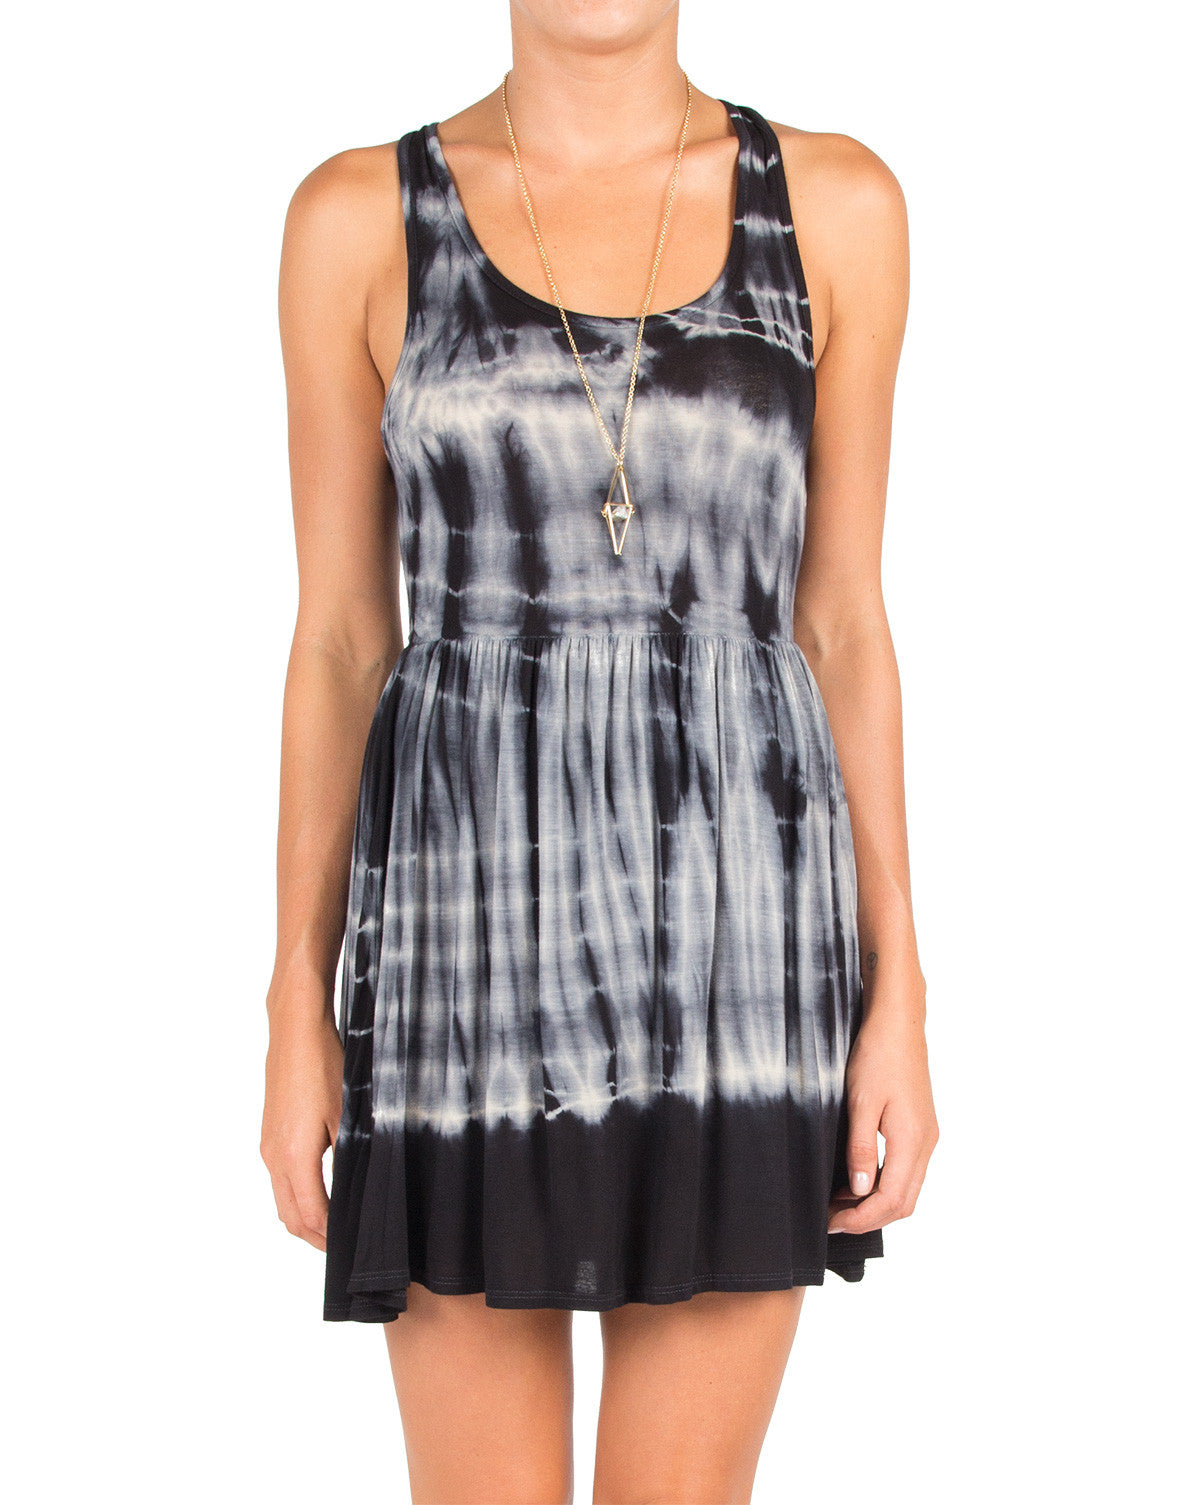 Keyhole Back Tie Dye Dress - Large